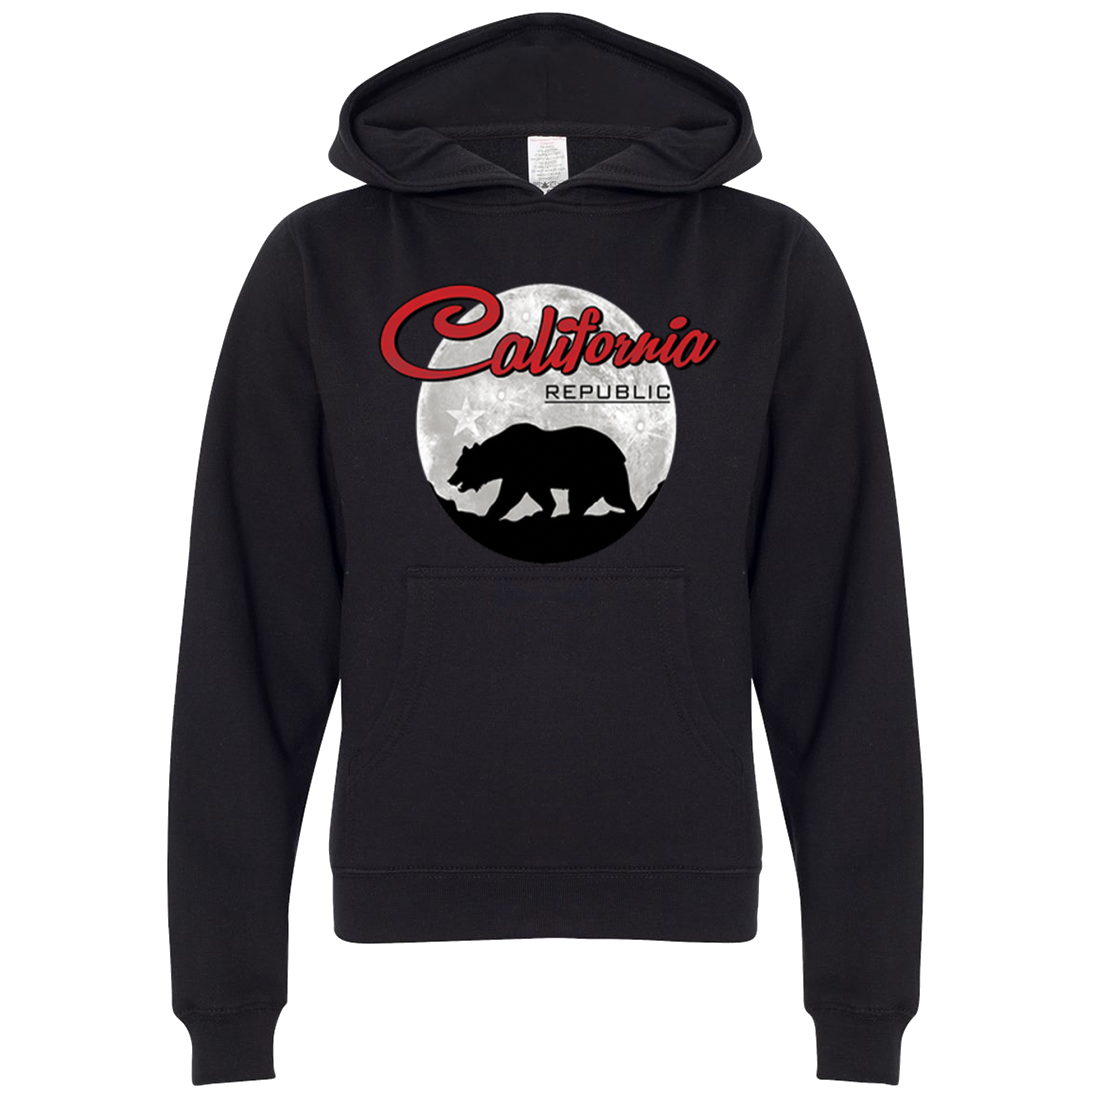 California Republic Full Moon Bear Premium Youth Sweatshirt Hoodie